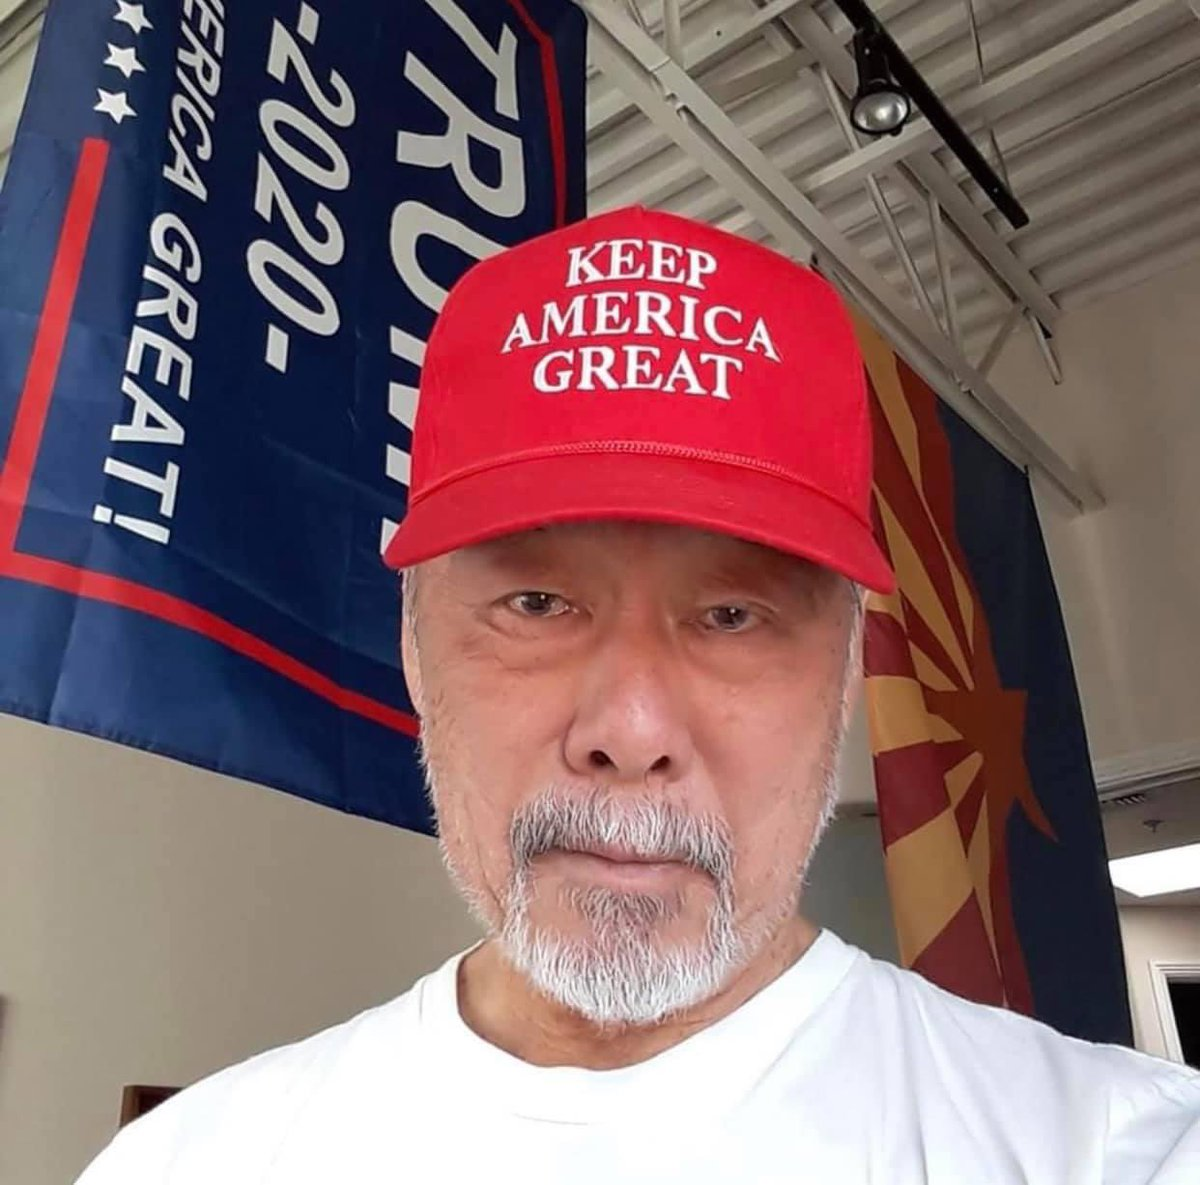 """This Paul Ng, a Scottsdale man who told two Black Men that were filming outside of his apartment that they needed to leave because they were in a """"No Nigger Zone"""" and he admitted on camera that he is a racist.  This is America.  This is the 2020.  Look who Paul supports.  #Vote https://t.co/WWv0E5RpS5"""